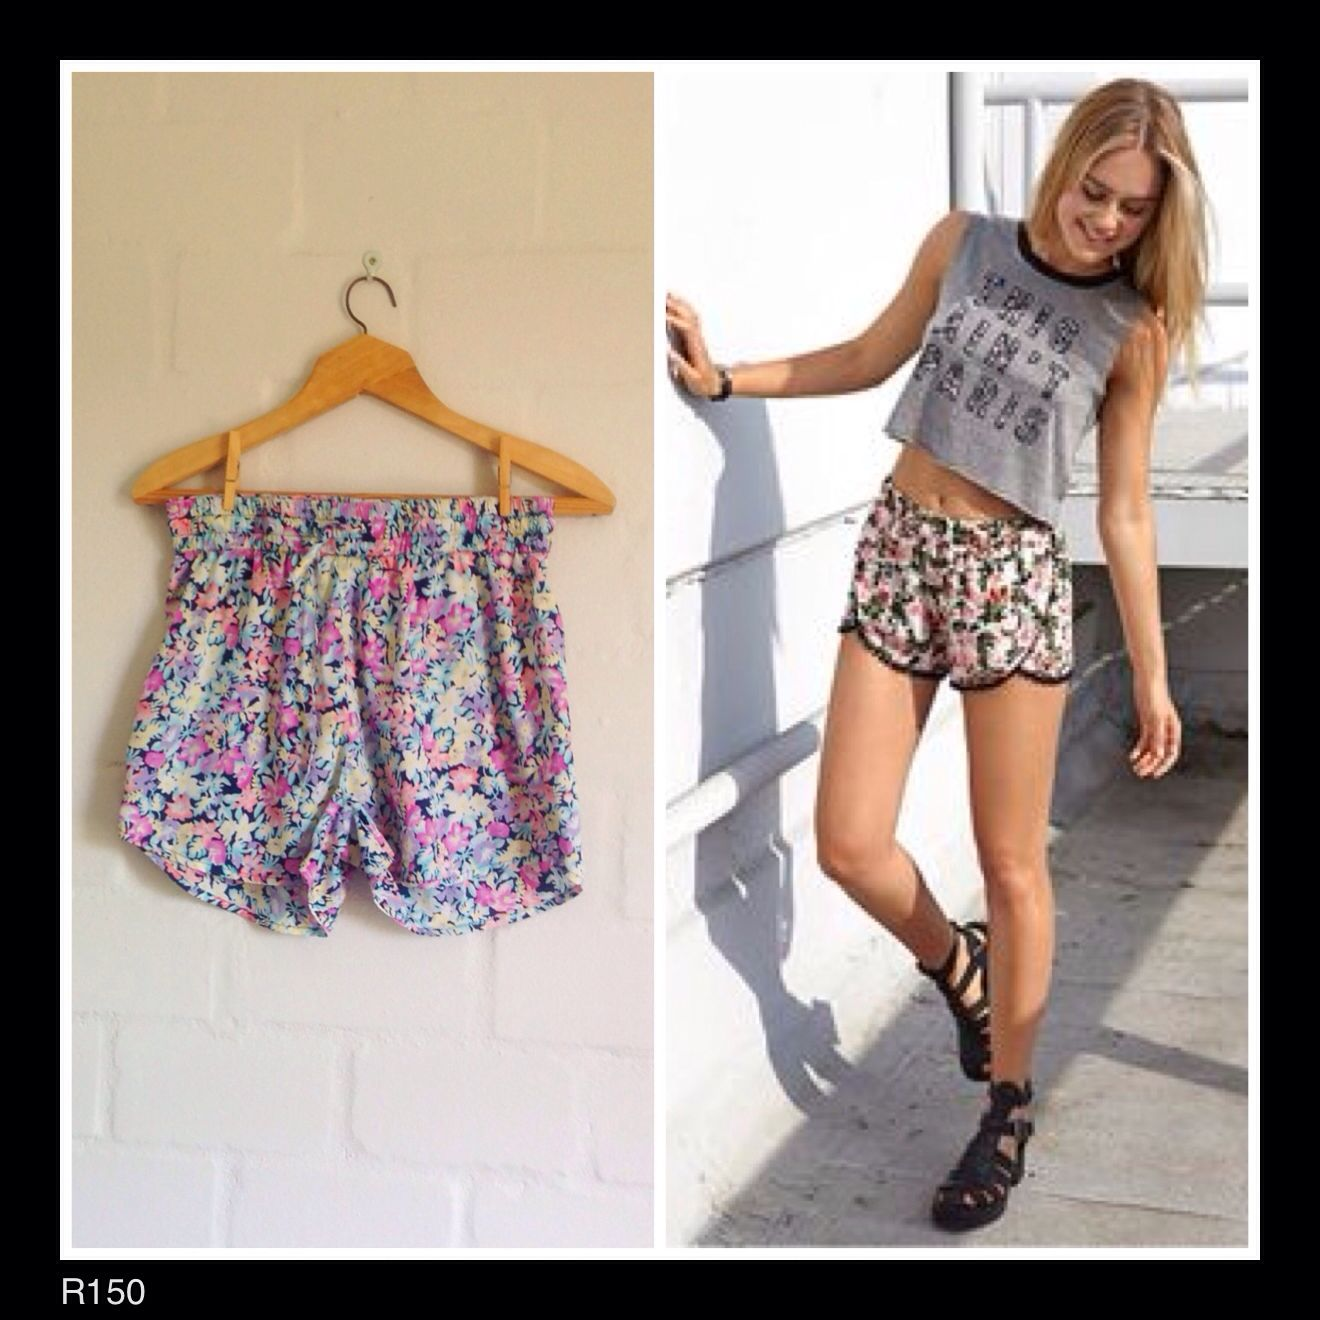 Cute festival shorts! Makes a welcome change to denim